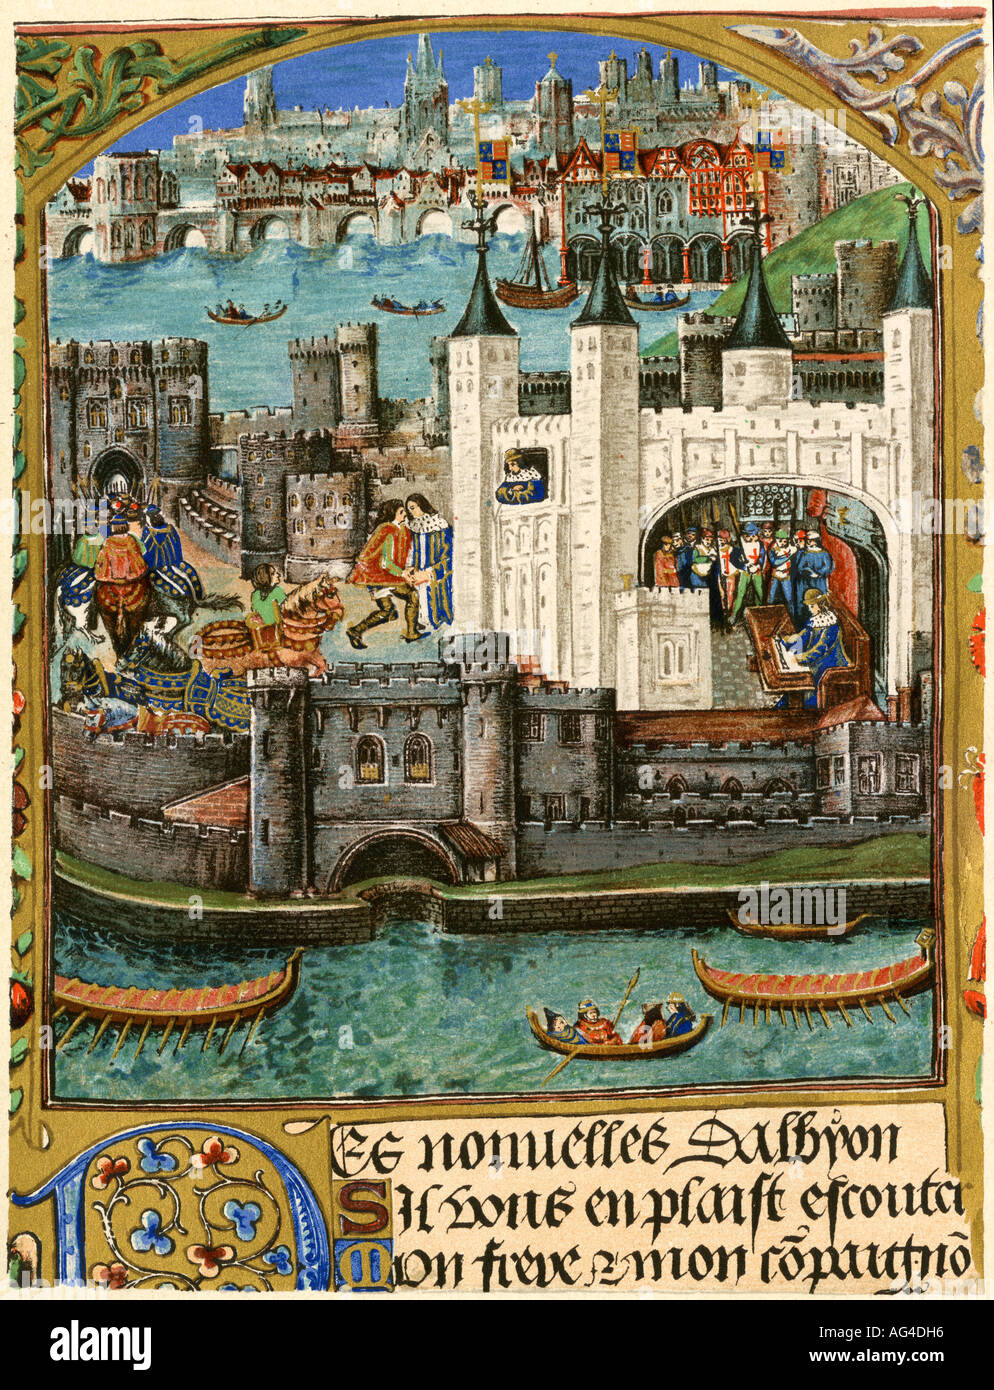 Tower of London during the time of Henry VII circa late 1400s. Color lithograph - Stock Image